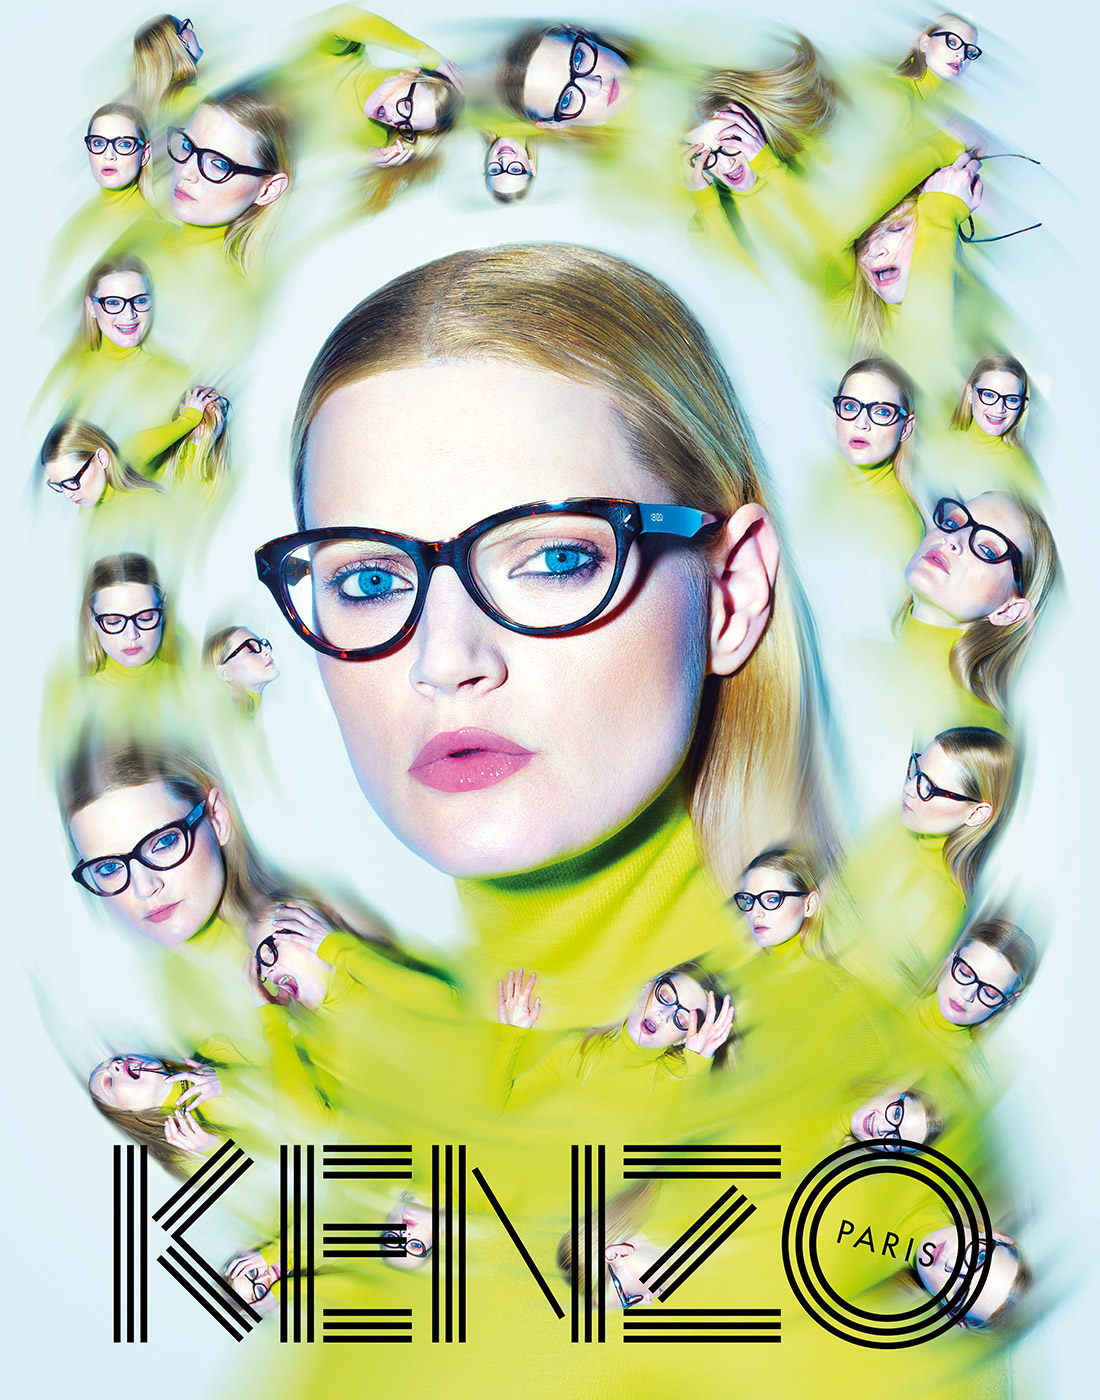 guinevere-van-seenus-robbie-mckinnon-by-pierpaolo-ferrari-for-kenzo-fall-winter-2014-2015-8